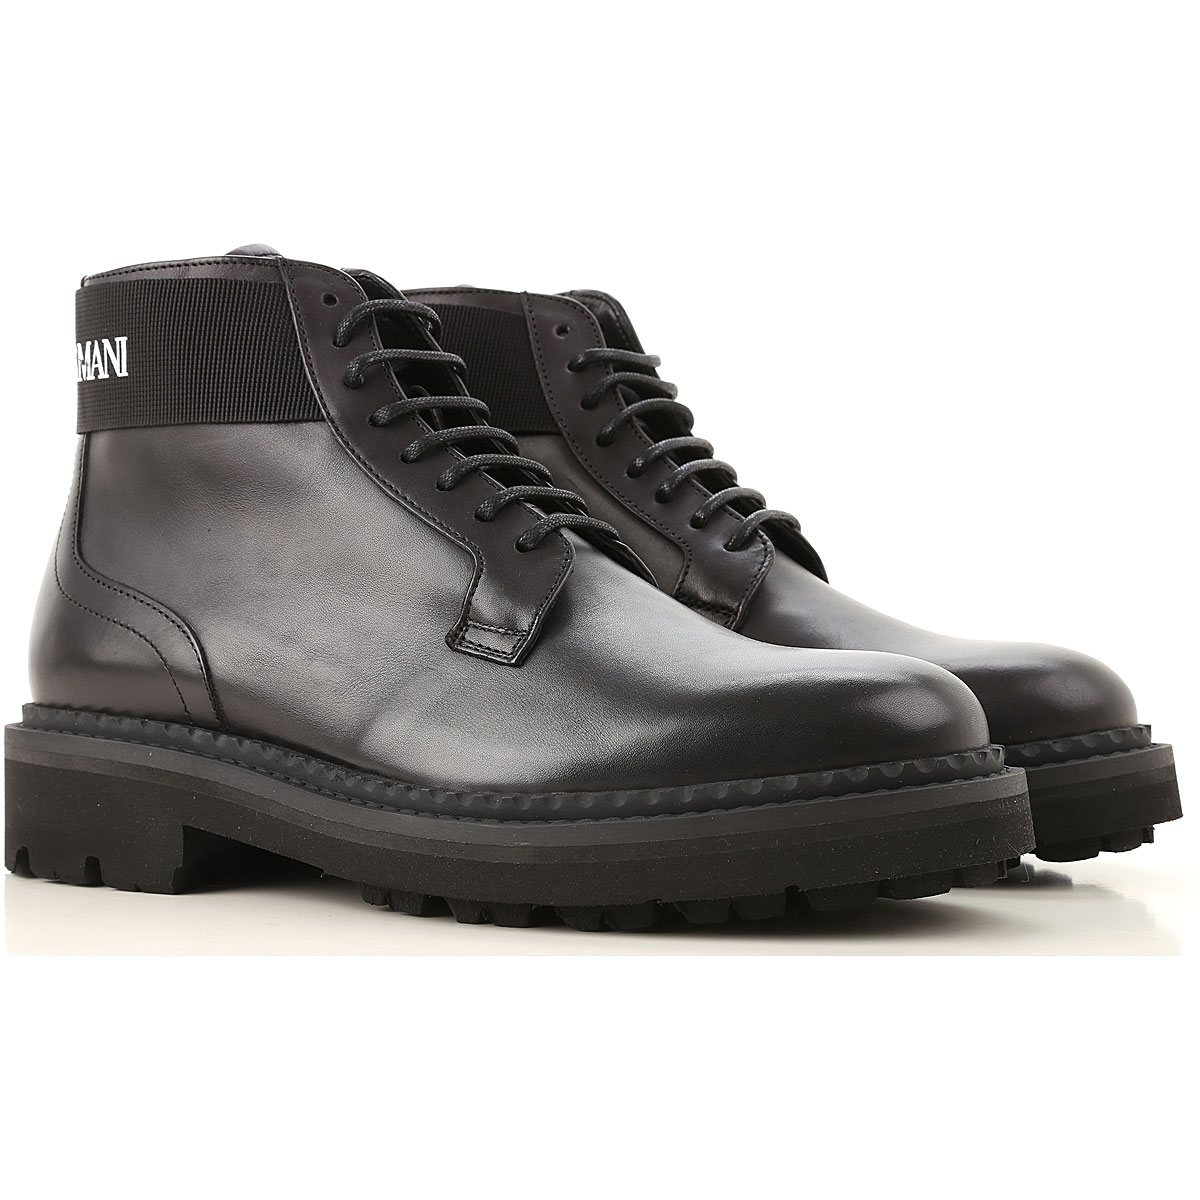 Emporio Armani Boots for Men, Booties On Sale, Black, Leather, 2019, 10.5 11